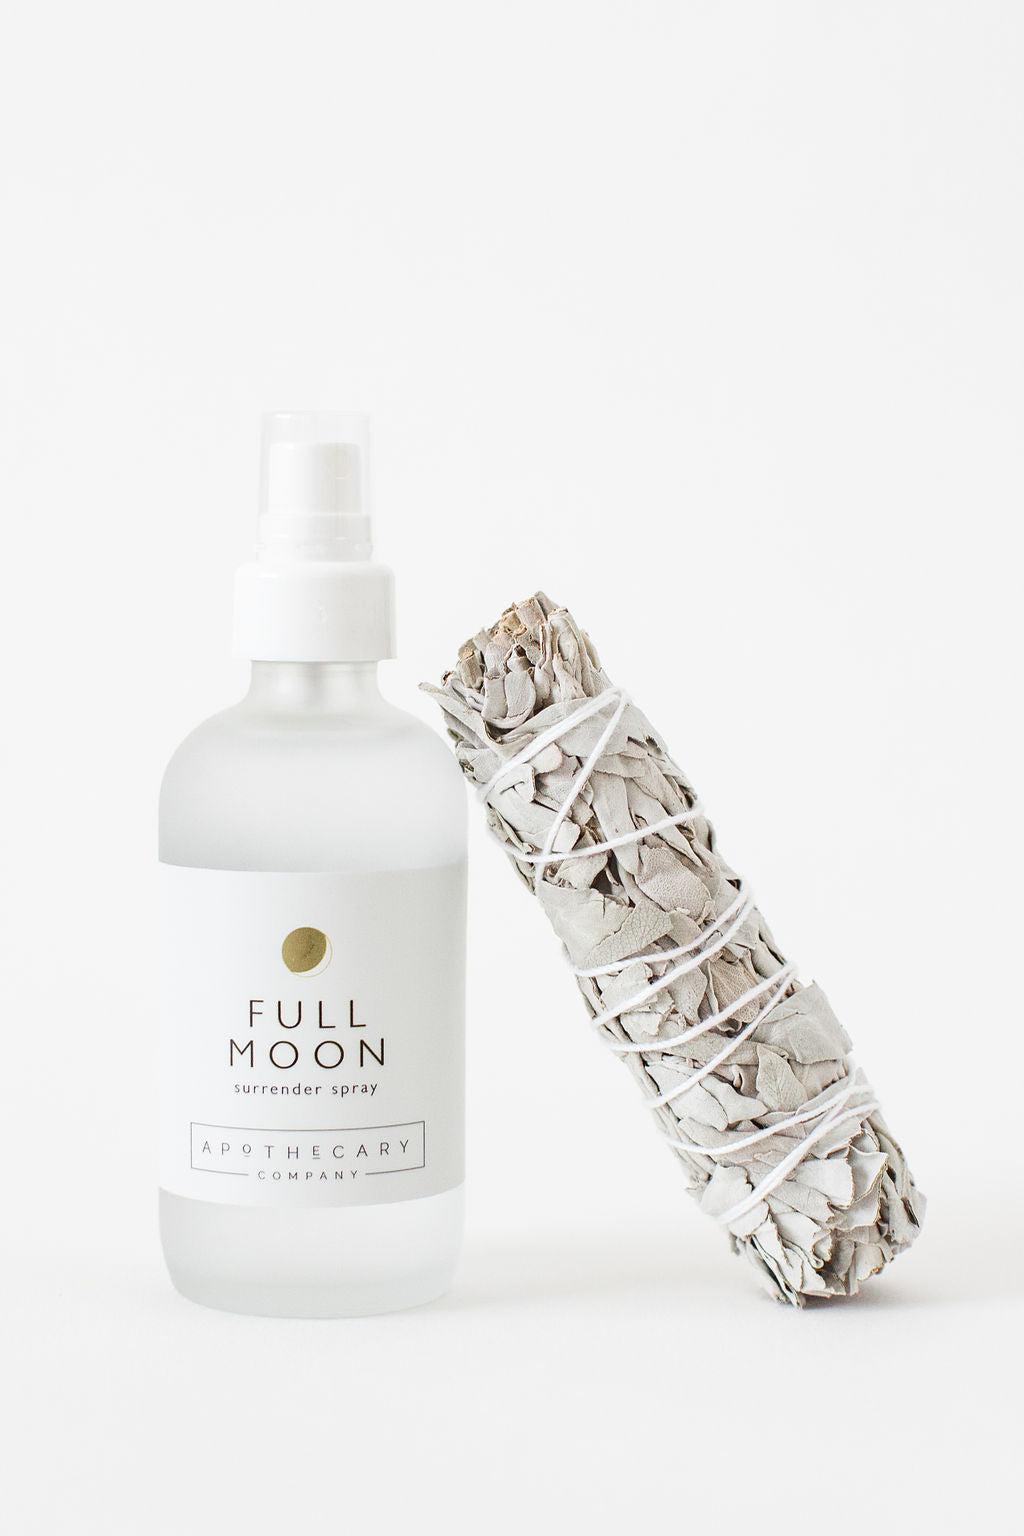 Apothecary Co. - Full Moon Surrender Spray